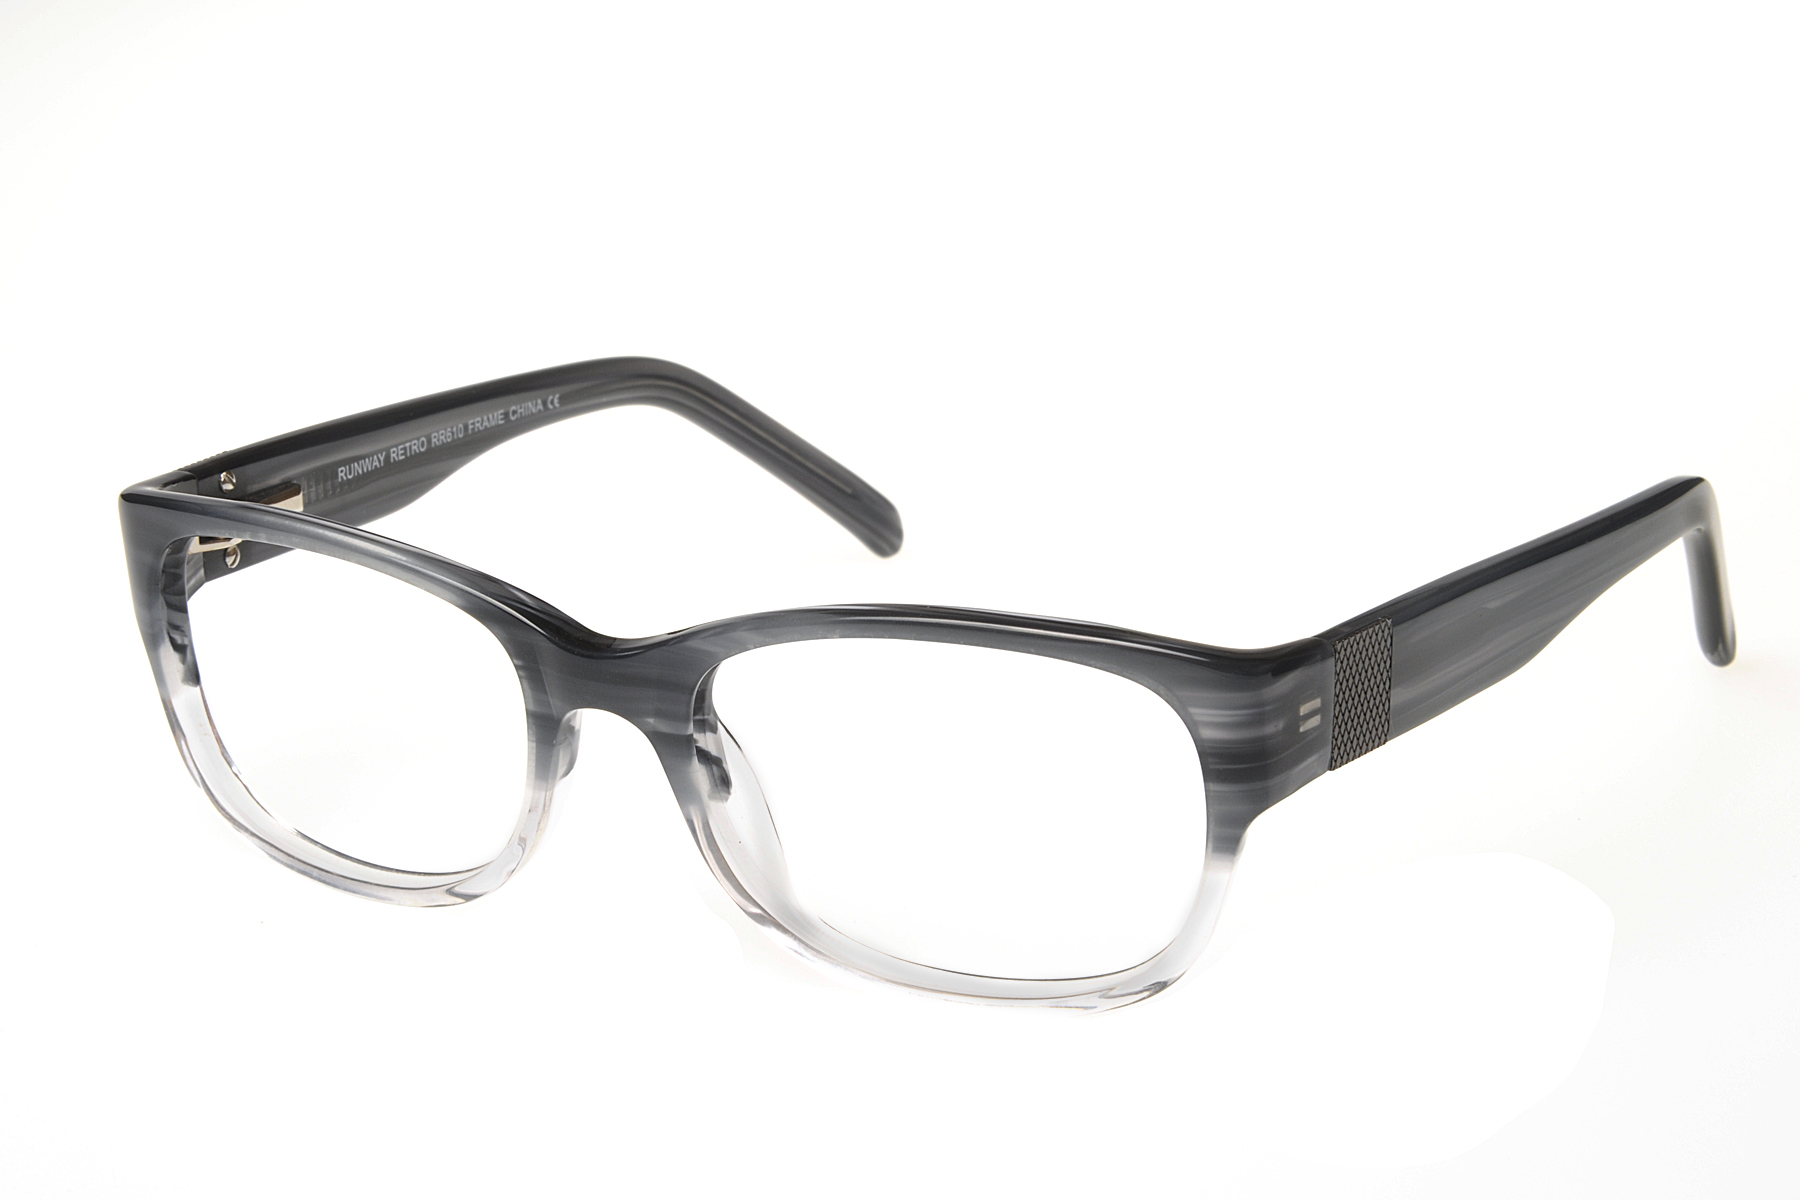 23a989a2b210 Runway Retro RR610 is available at SpecsToGo-Eyeglasses and Sunglasses